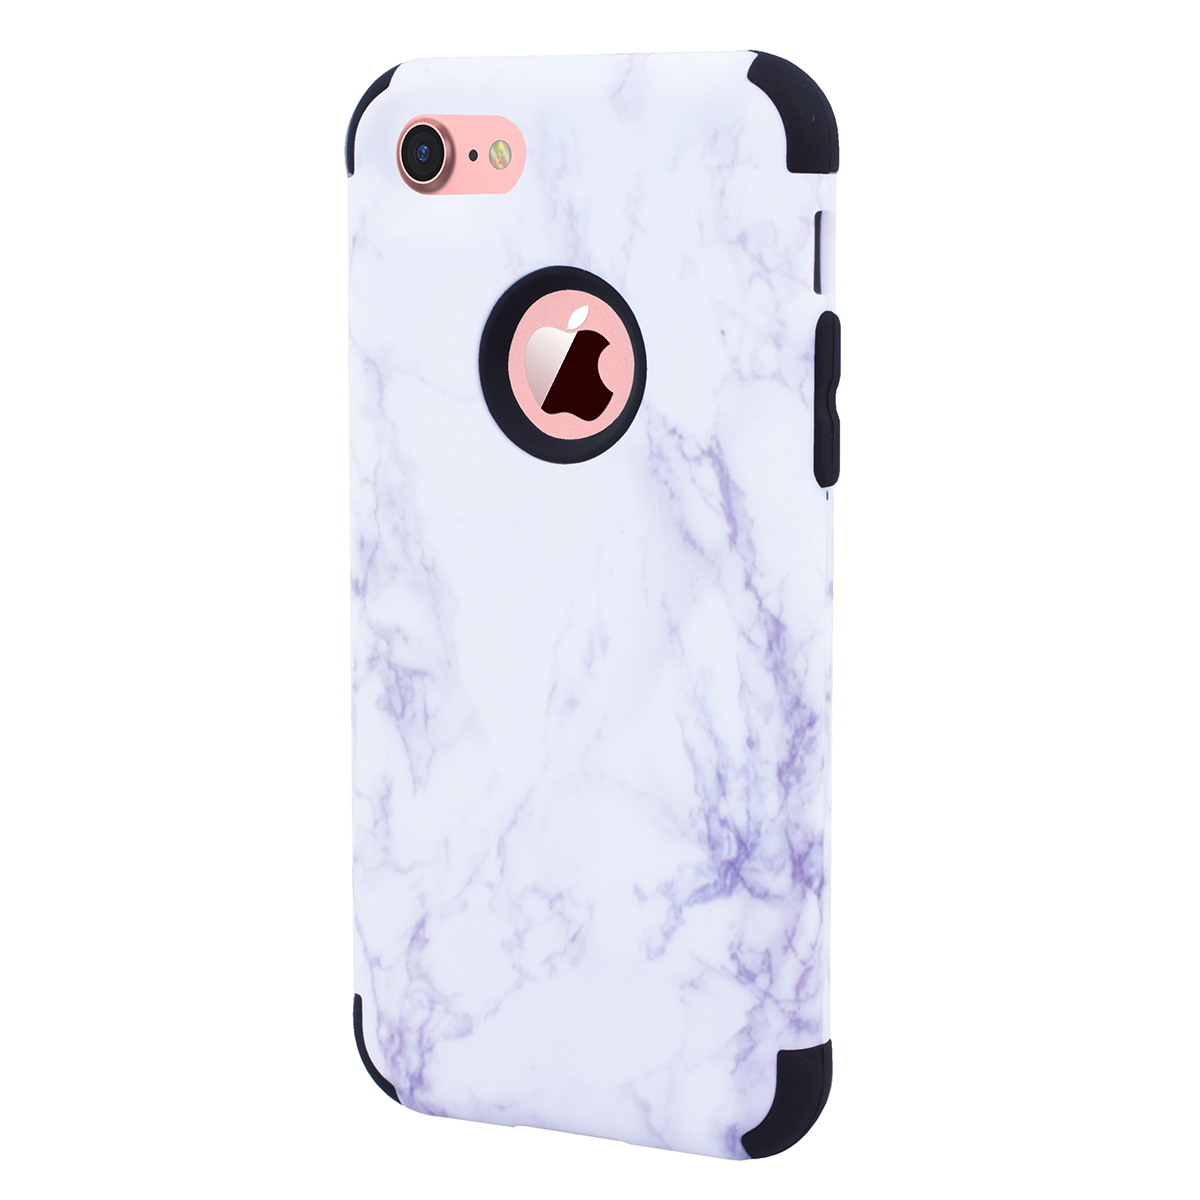 Marble back case for iphone 7 GrandEver 360 full cover for iPhone 7 7 plus case Drop Protection Fitted Cover For iPhone7 plus